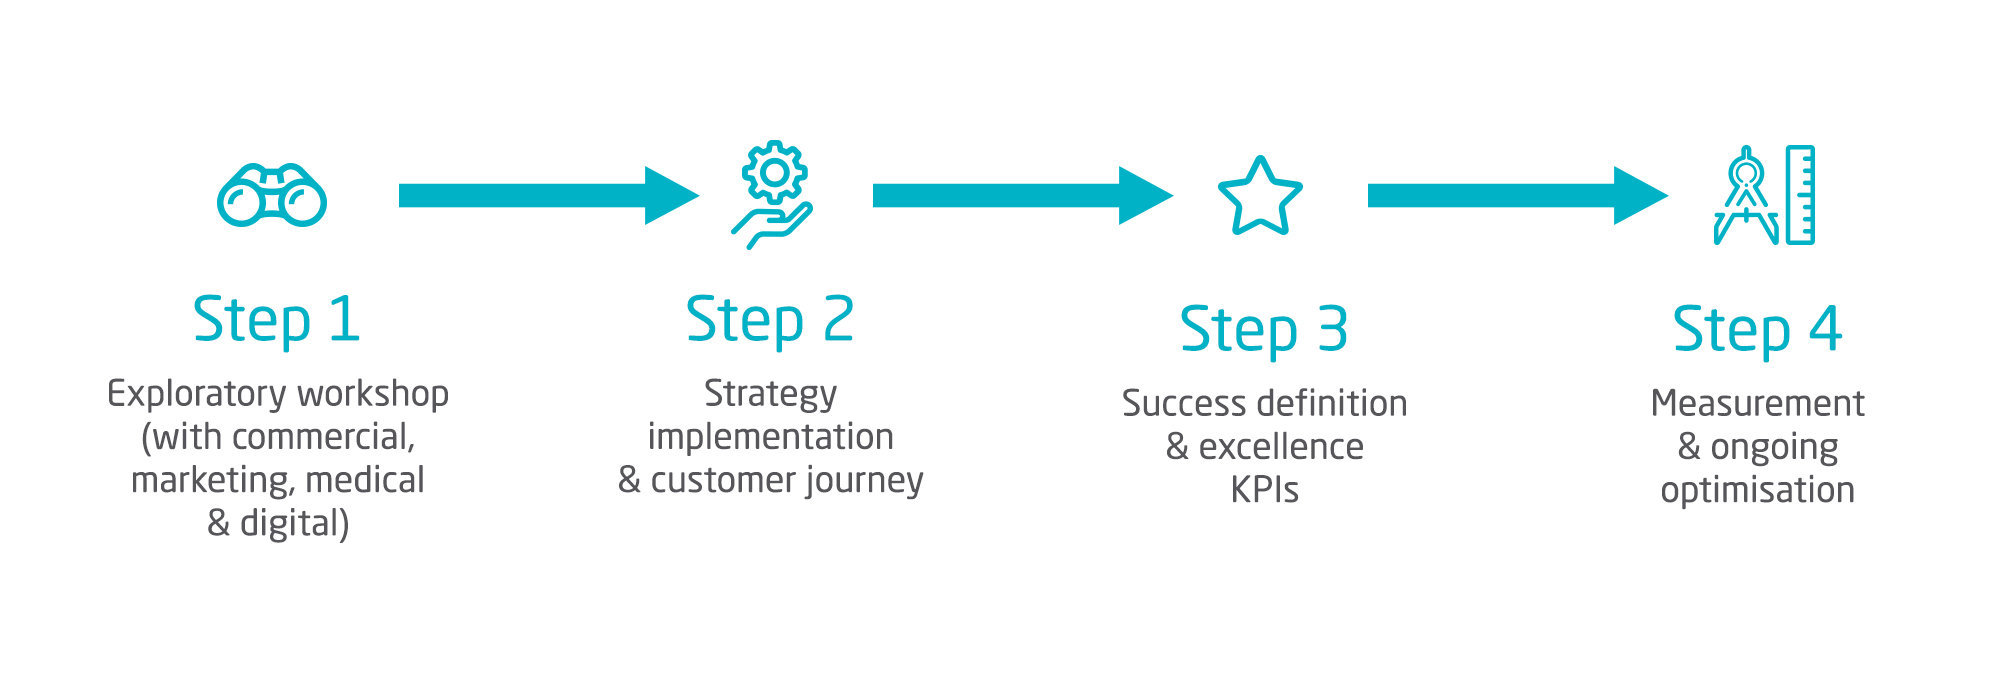 4 step methodology with clear deliverables to ensure your Digital Success